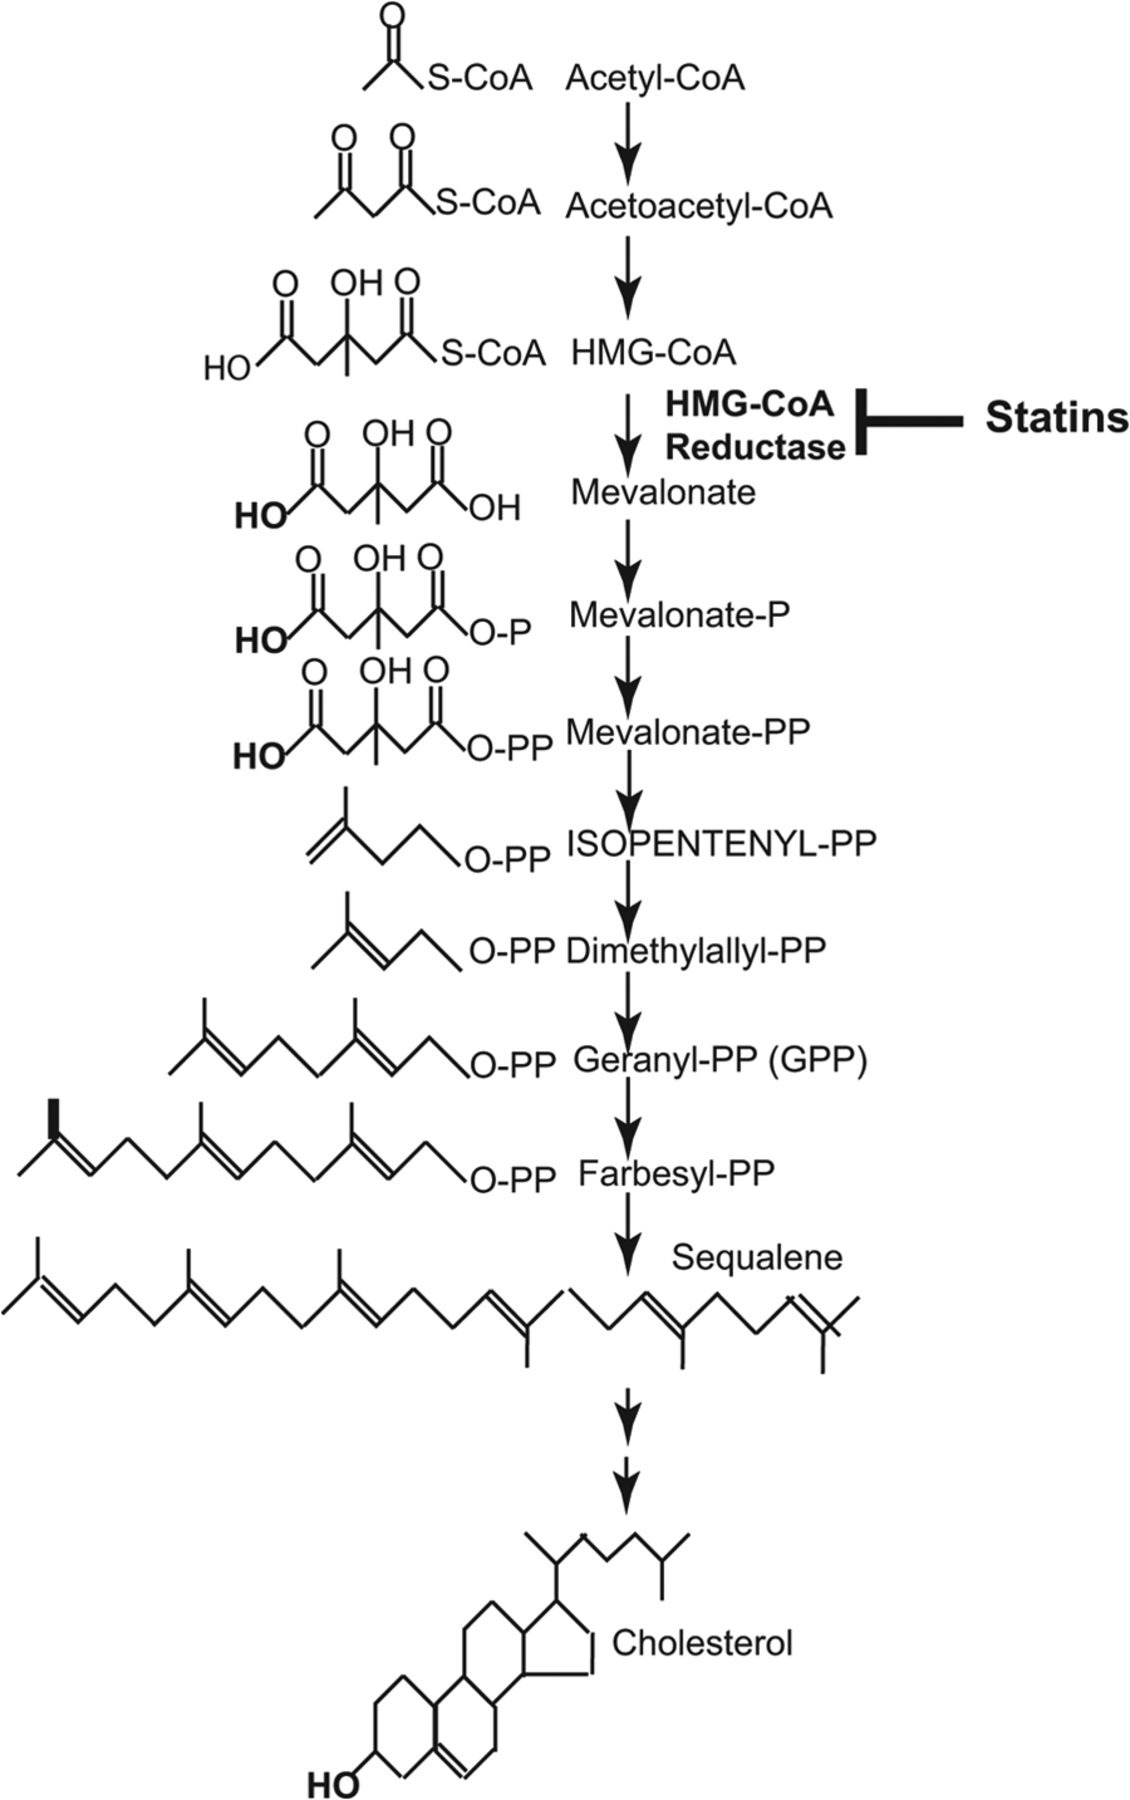 3 Hydroxyl 3 Methylglutaryl Coenzyme A Hmg Coa Reductase Inhibitor Statin Induced 28 Kda Interleukin 1β Interferes With Mature Il 1β Signaling Journal Of Biological Chemistry